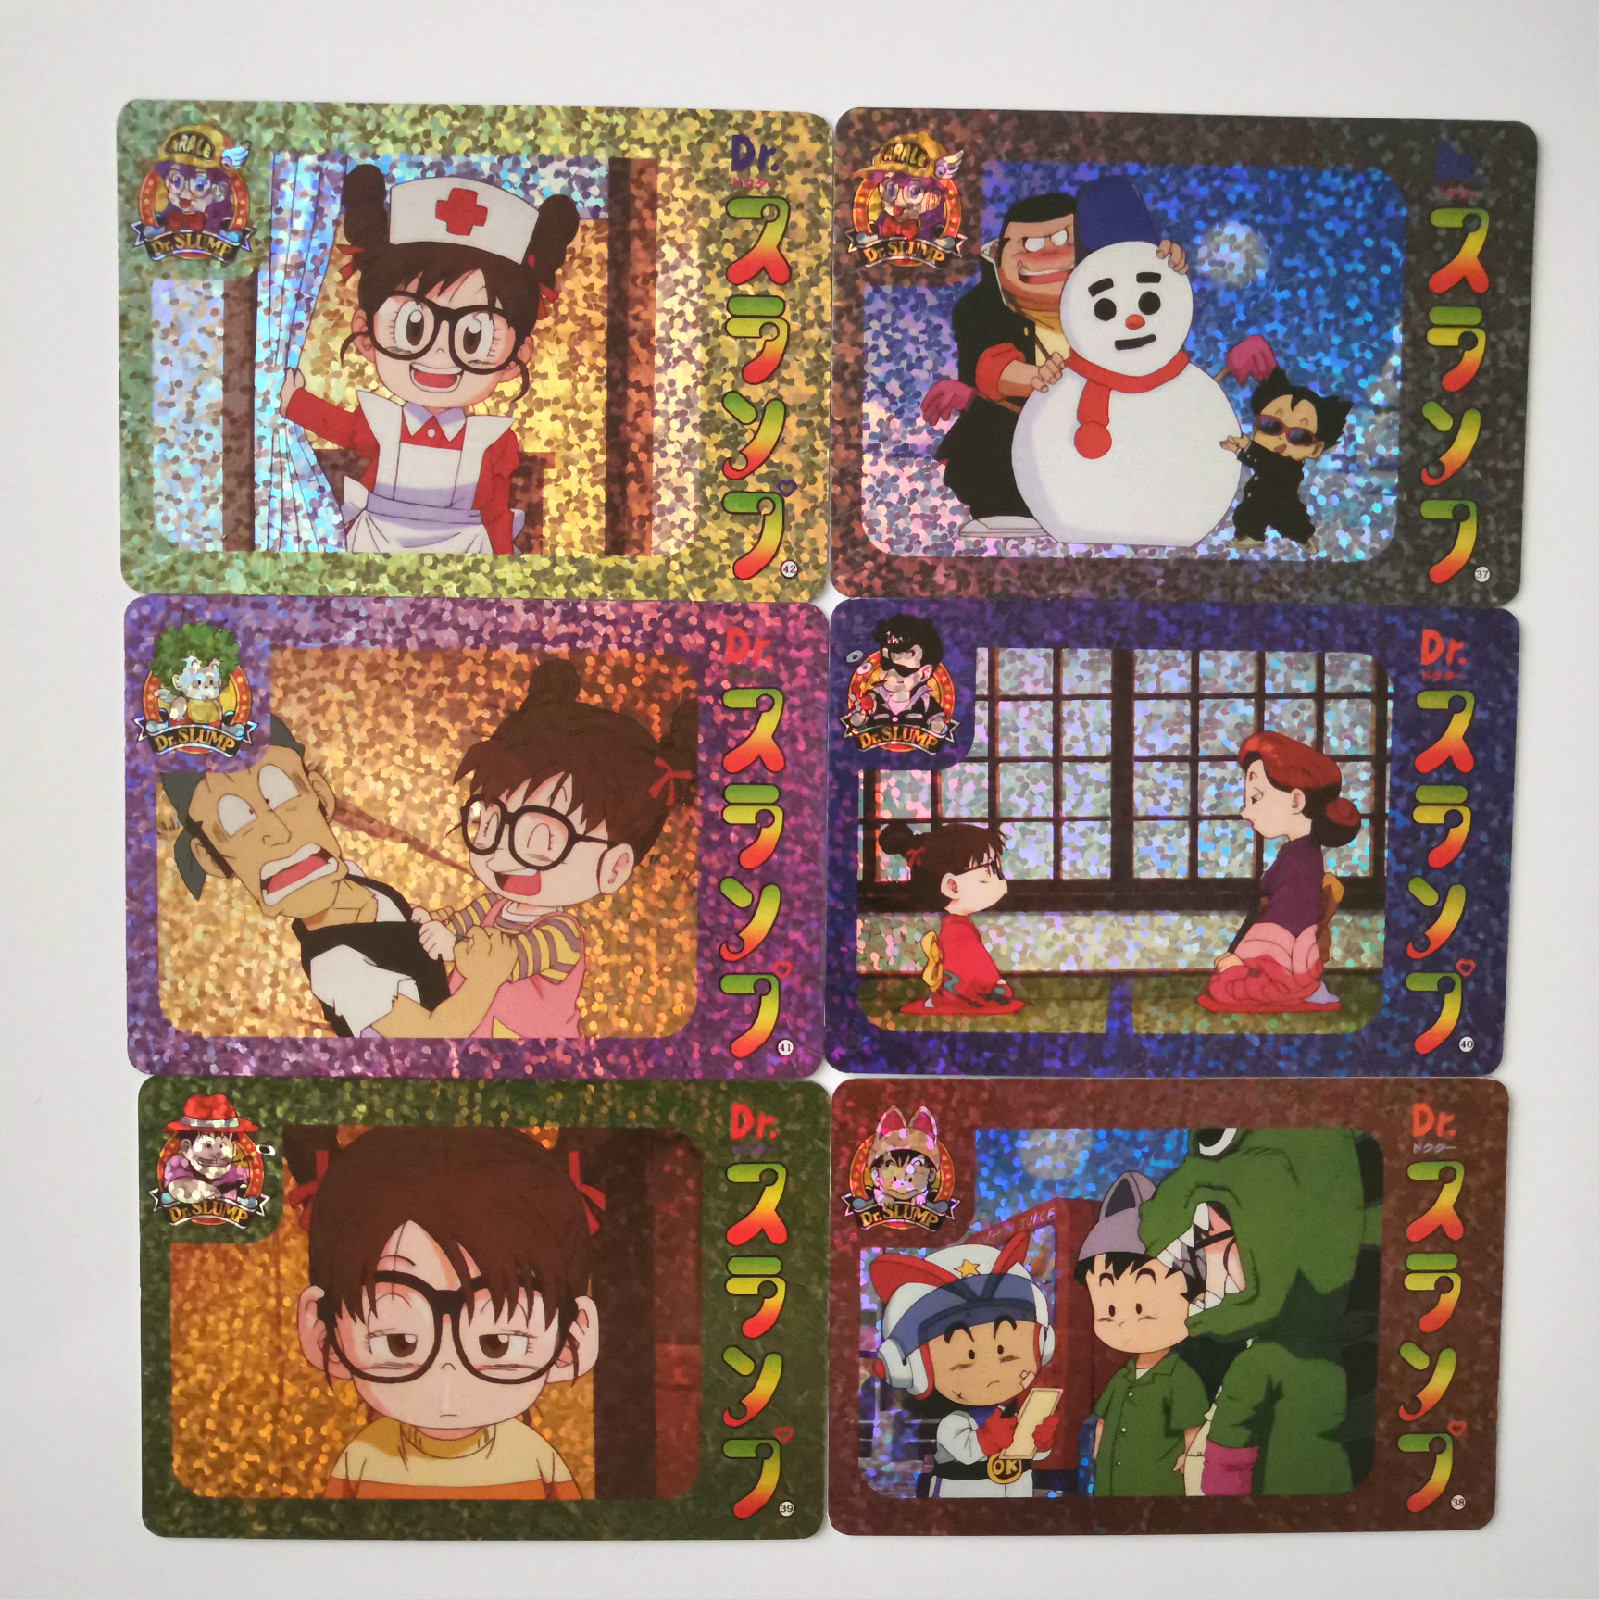 34pcs/set Arale Drama Card Season 2 Sets Heroes Battle Card Collection Anime Cards